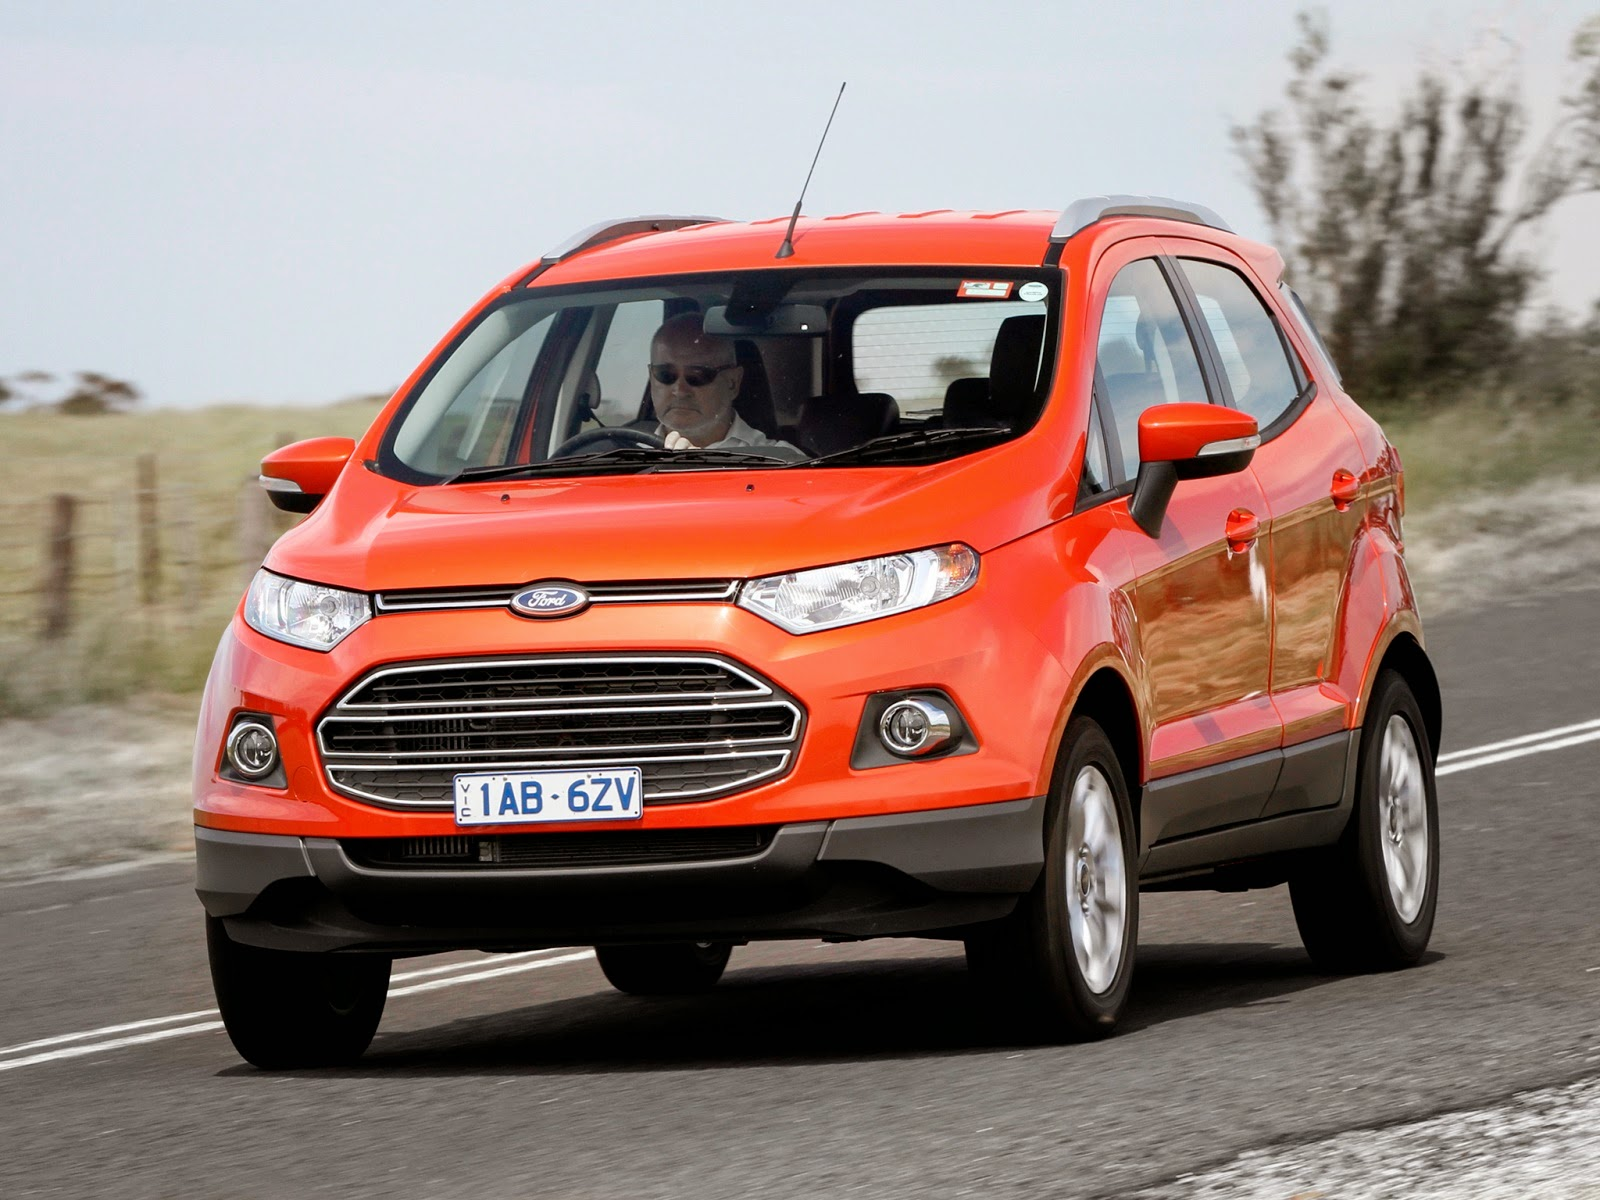 20 all new ford ecosport ruggedness in a small package